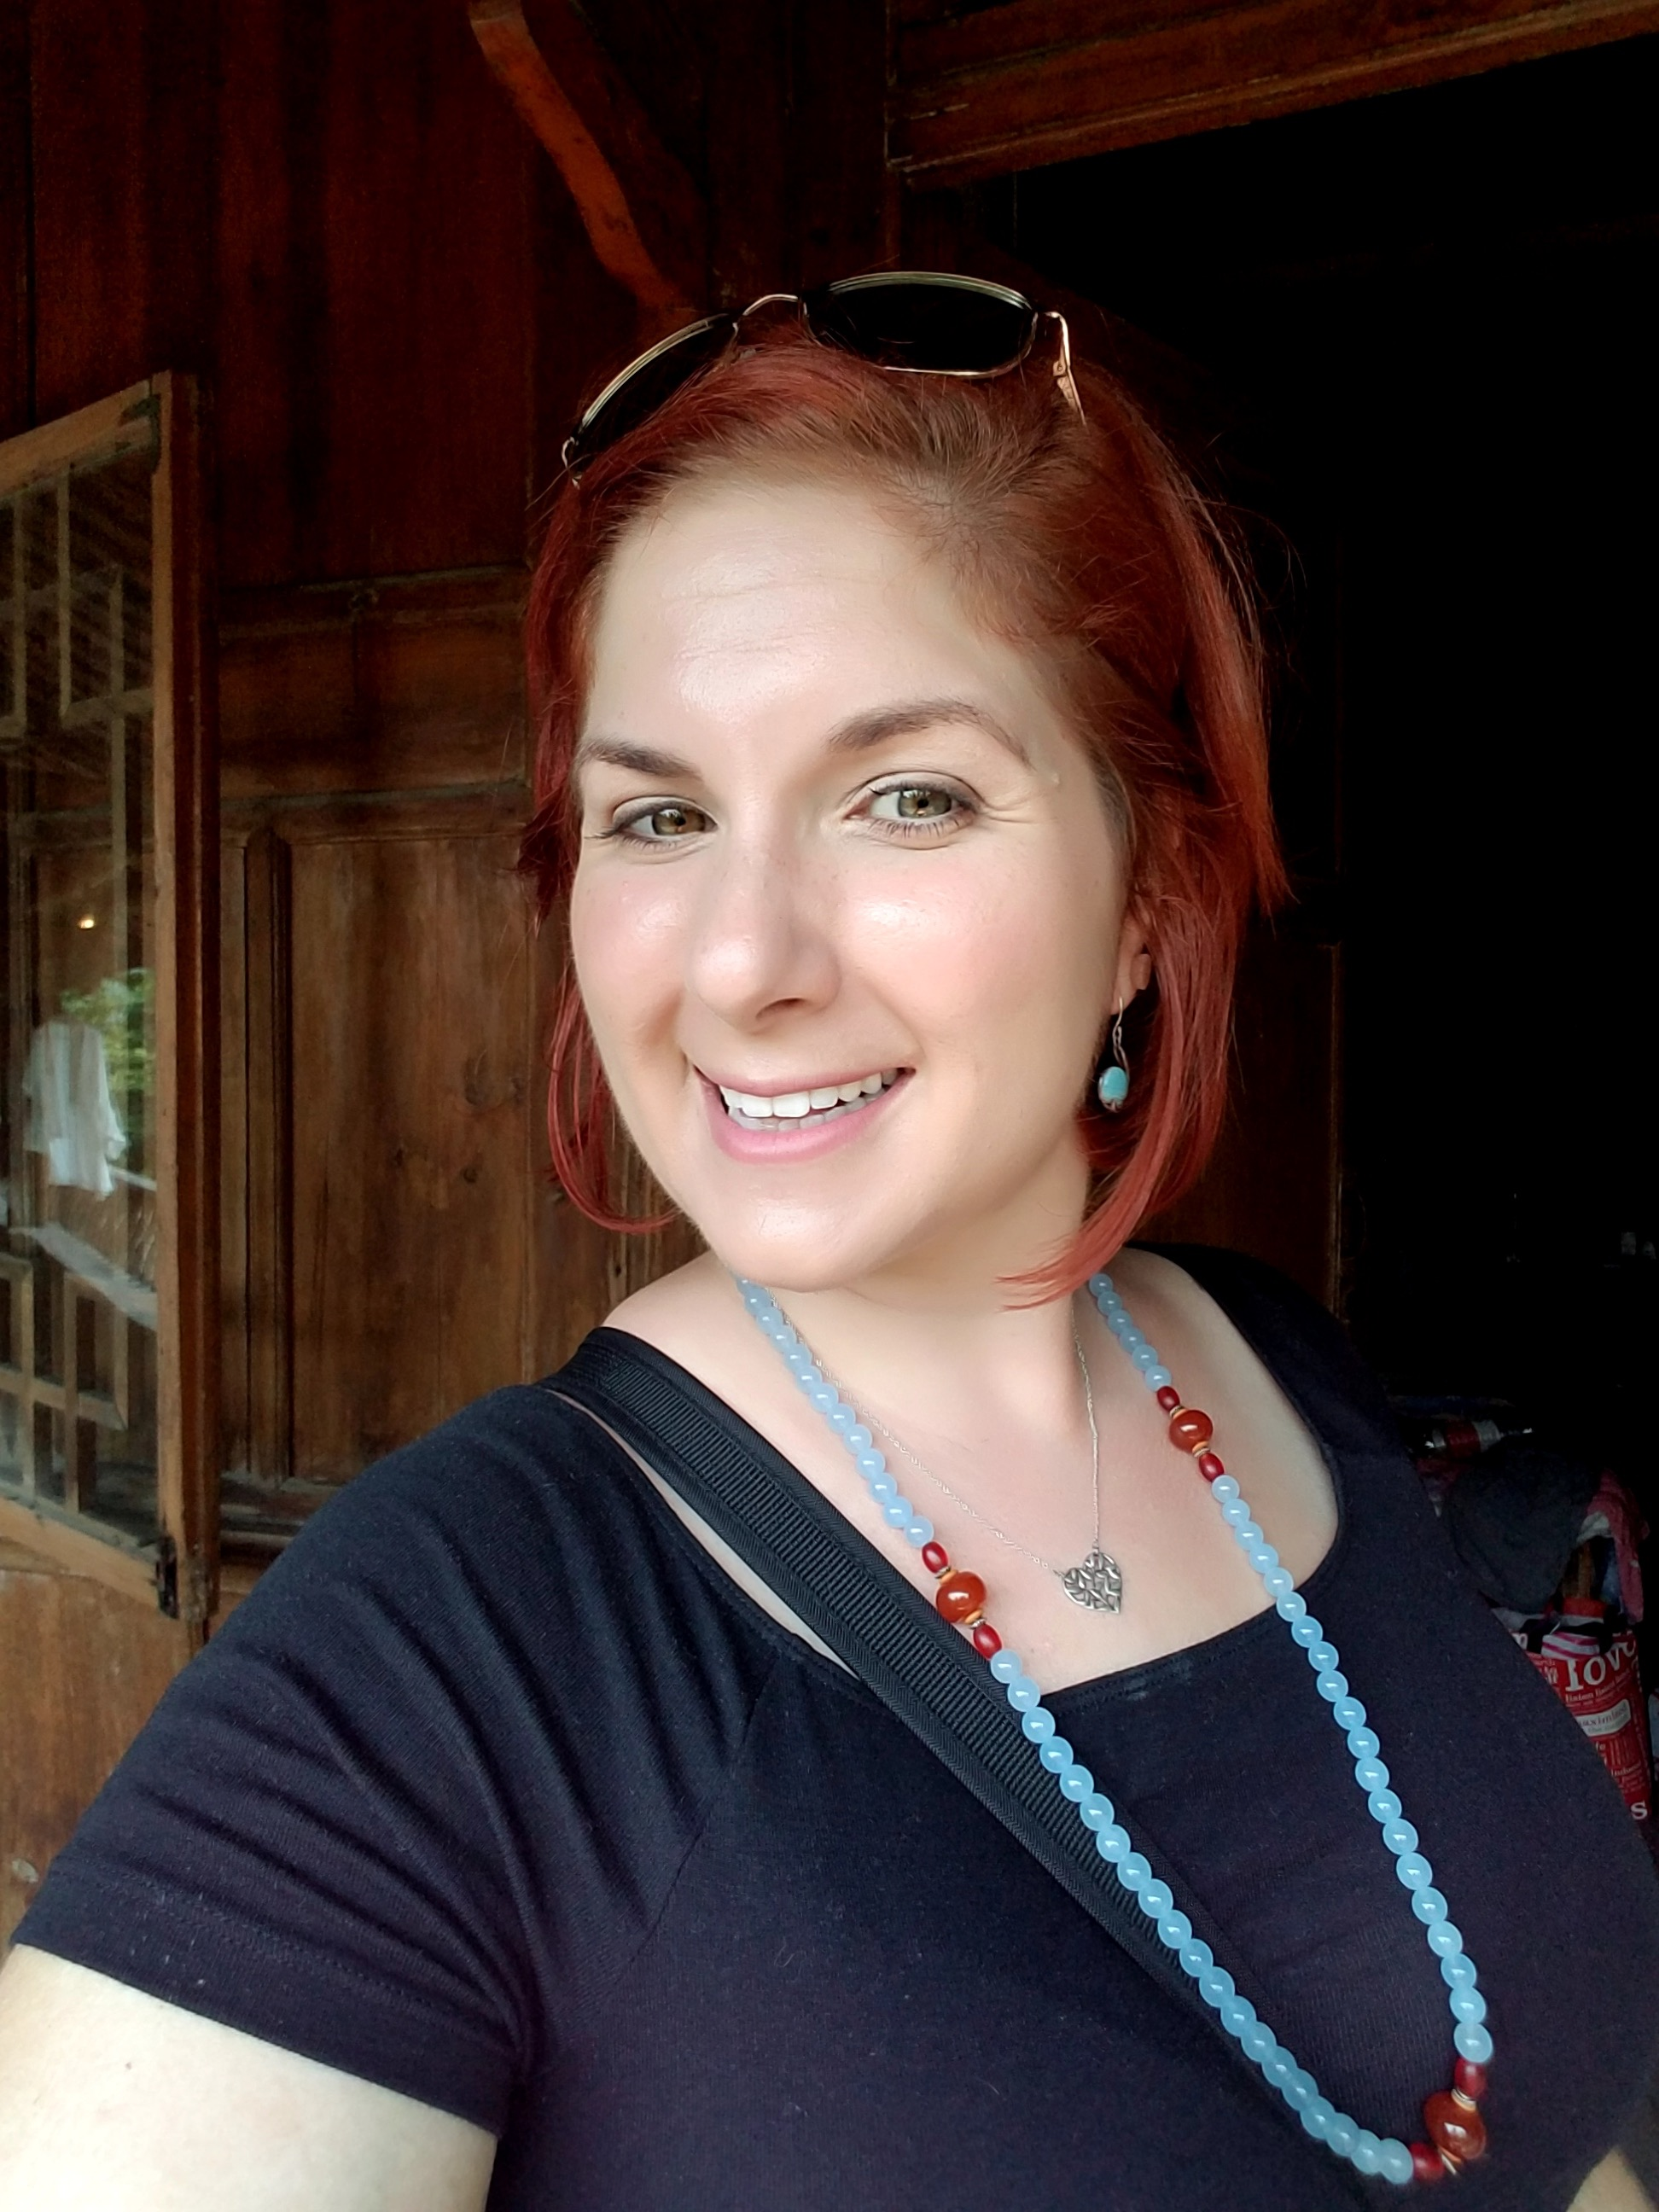 Kathryn Ronzo MS, ND, M.Ac, CPES Assistant Director of Operations  Katie is a naturopathic doctor that graduated from the University of Bridgeport with her doctorate in naturopathic medicine and a Masters in Acupuncture. She also has a Masters degree in Interdisciplinary Health Sciences from Drexel University College of Medicine in Philadelphia, Pennsylvania and her Bachelor of Science in Biology with a minor in Chemistry from Saint Leo University in Saint Leo, Florida.  Katie is a certified placenta encapsulation specialist who has also trained in advanced concepts of homeopathy with world-renowned Homeopaths, Dr. Paul Herscu and Dr. Amy Rothenberg at the New England School of Homeopathy in Boston, Massachusetts. In February 2014, she began her training in Craniosacral Therapy through Upledger Institute and is certified in Craniosacral Therapy and Somatic emotional release.  When she's not fulfilling her passion for learning, Katie enjoys hanging out with her two miniature dachshunds, Cosmo and Stella. She is also an avid crafter who especially enjoys sewing, quilting, knitting, gardening, and photography. But when the weather and tides are right, you can find her and her fiancé, Steve, at their favorite fishing spots trying to catch something worth talking about!